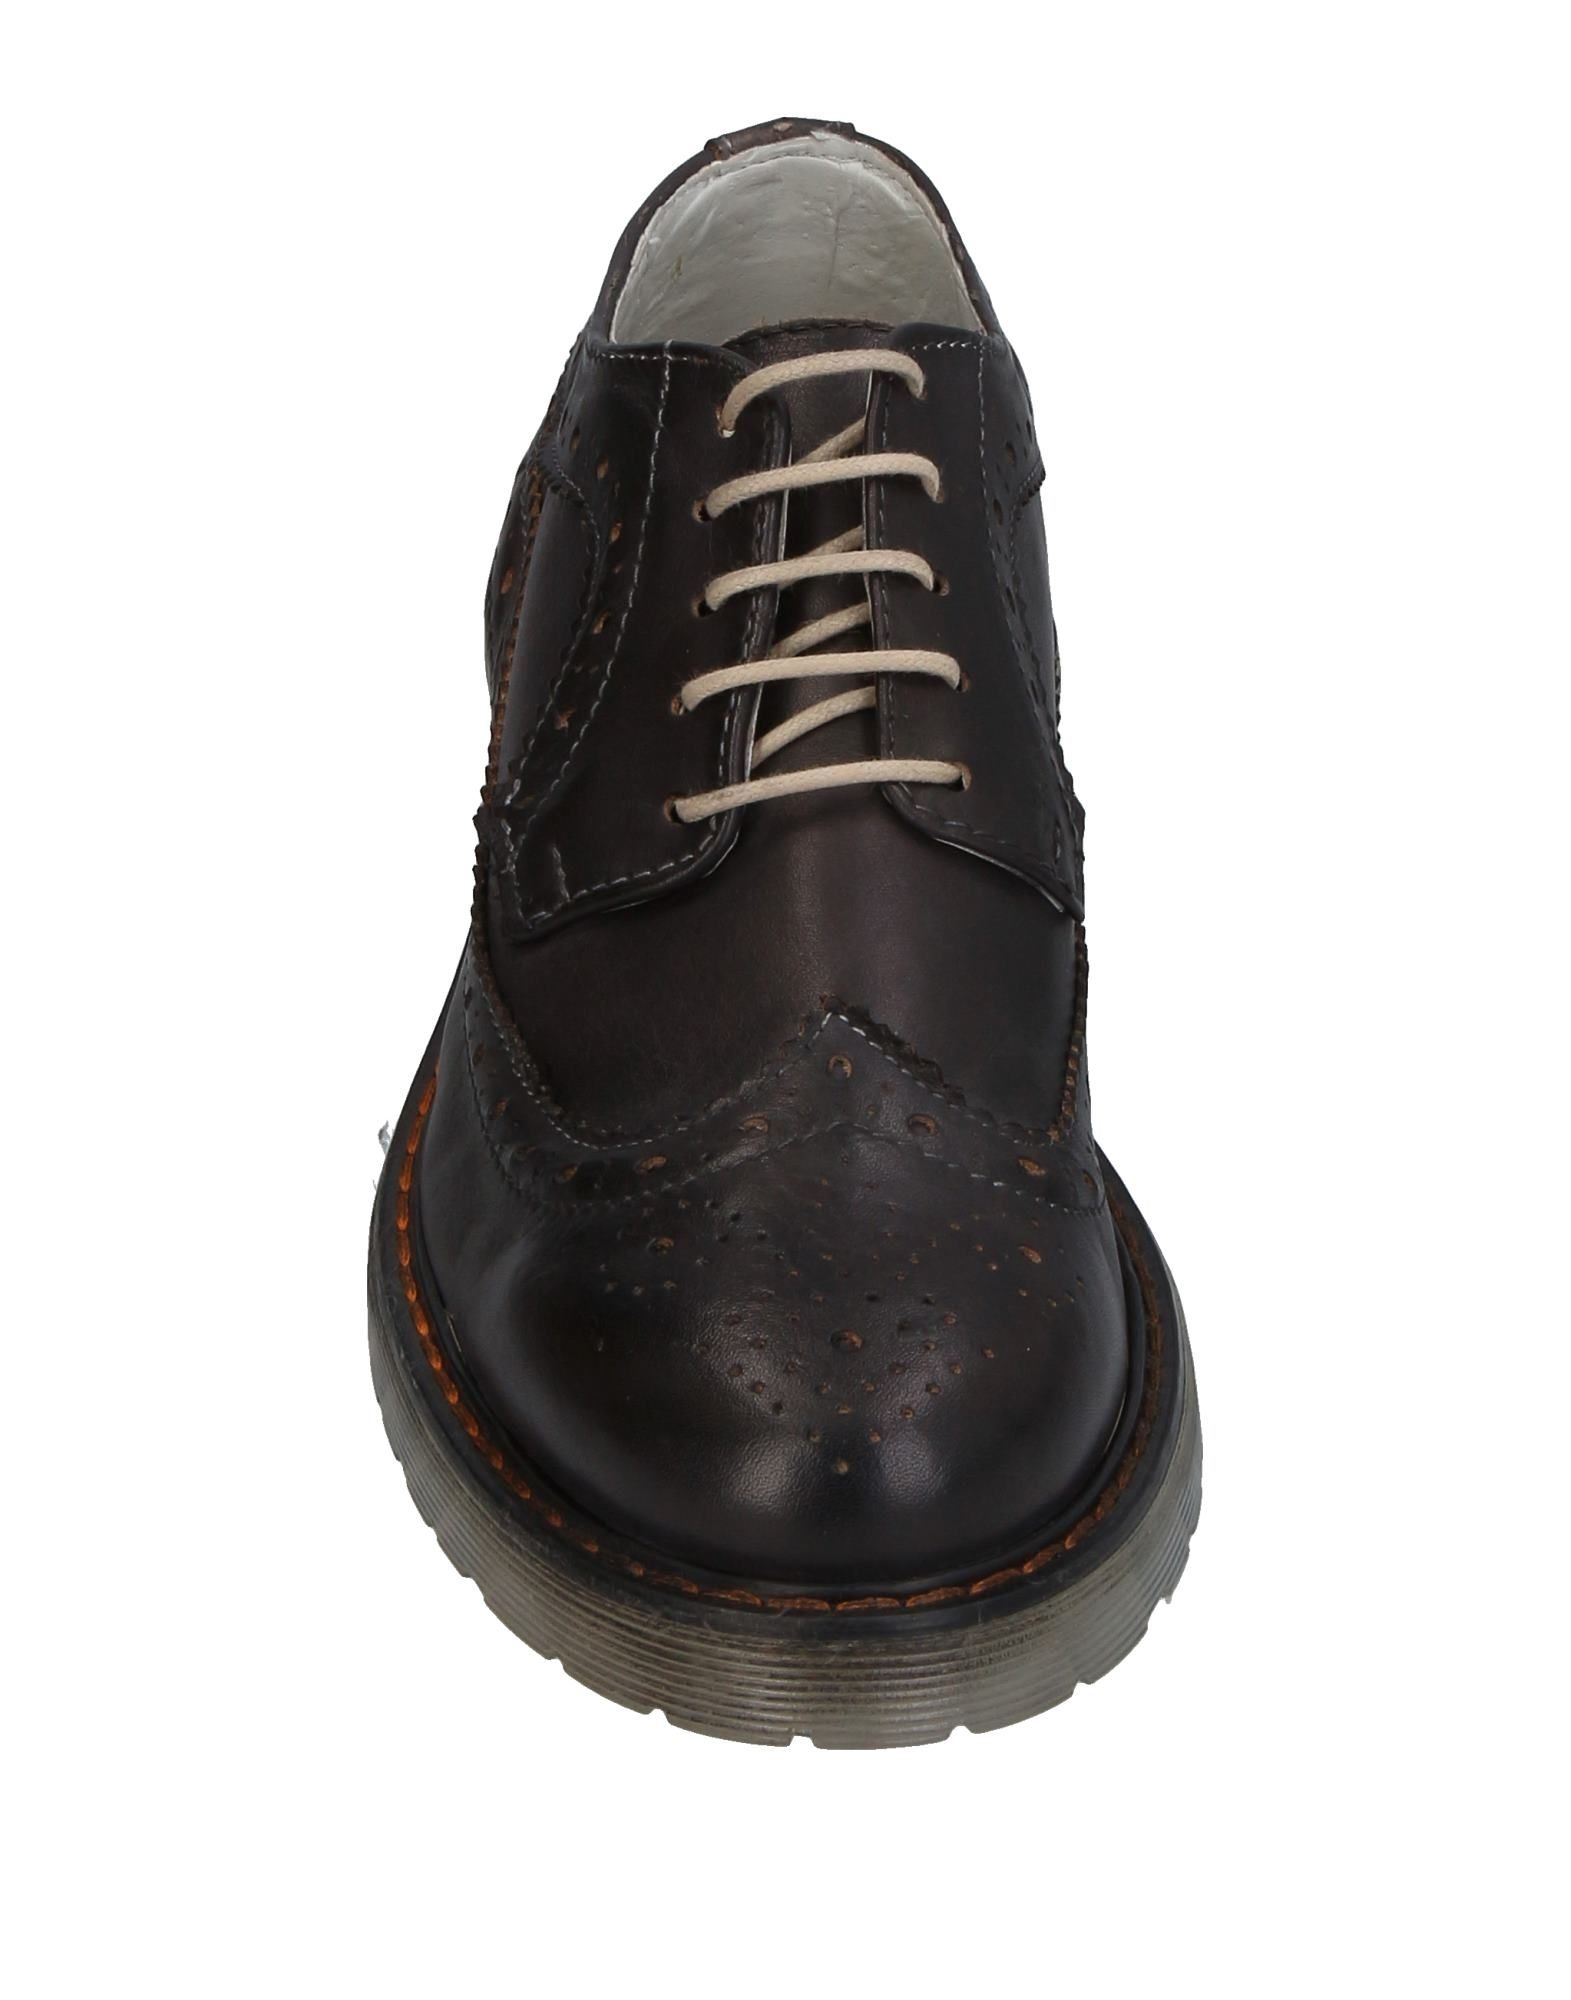 Chaussures À Lacets Cantù Made In Italy Femme - Chaussures À Lacets Cantù Made In Italy sur